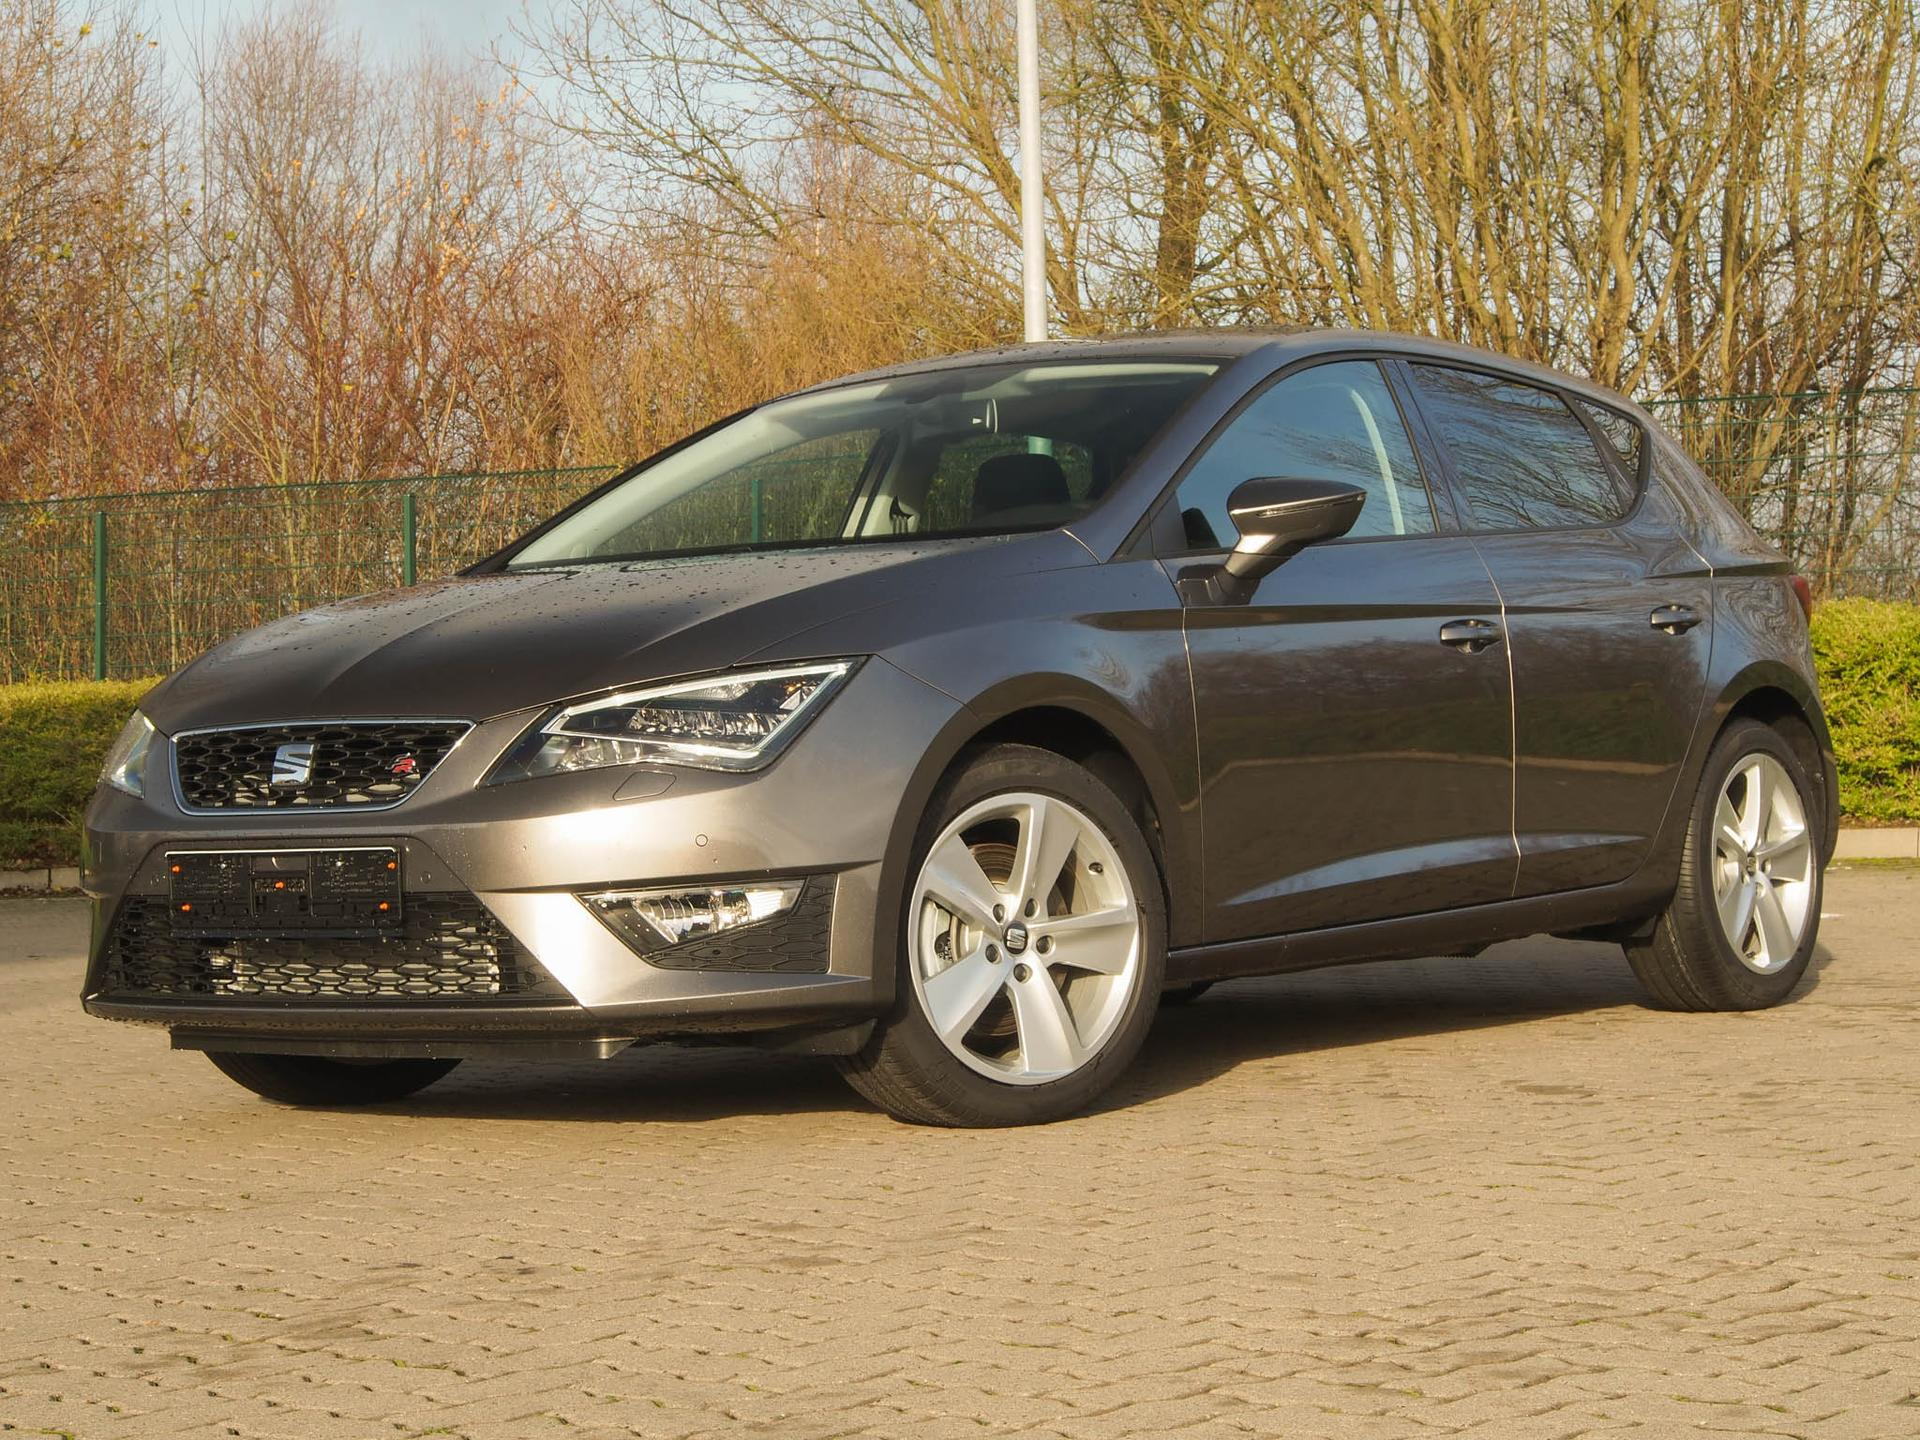 seat leon fr neuwagen mit rabatt eu reimporte g nstig. Black Bedroom Furniture Sets. Home Design Ideas